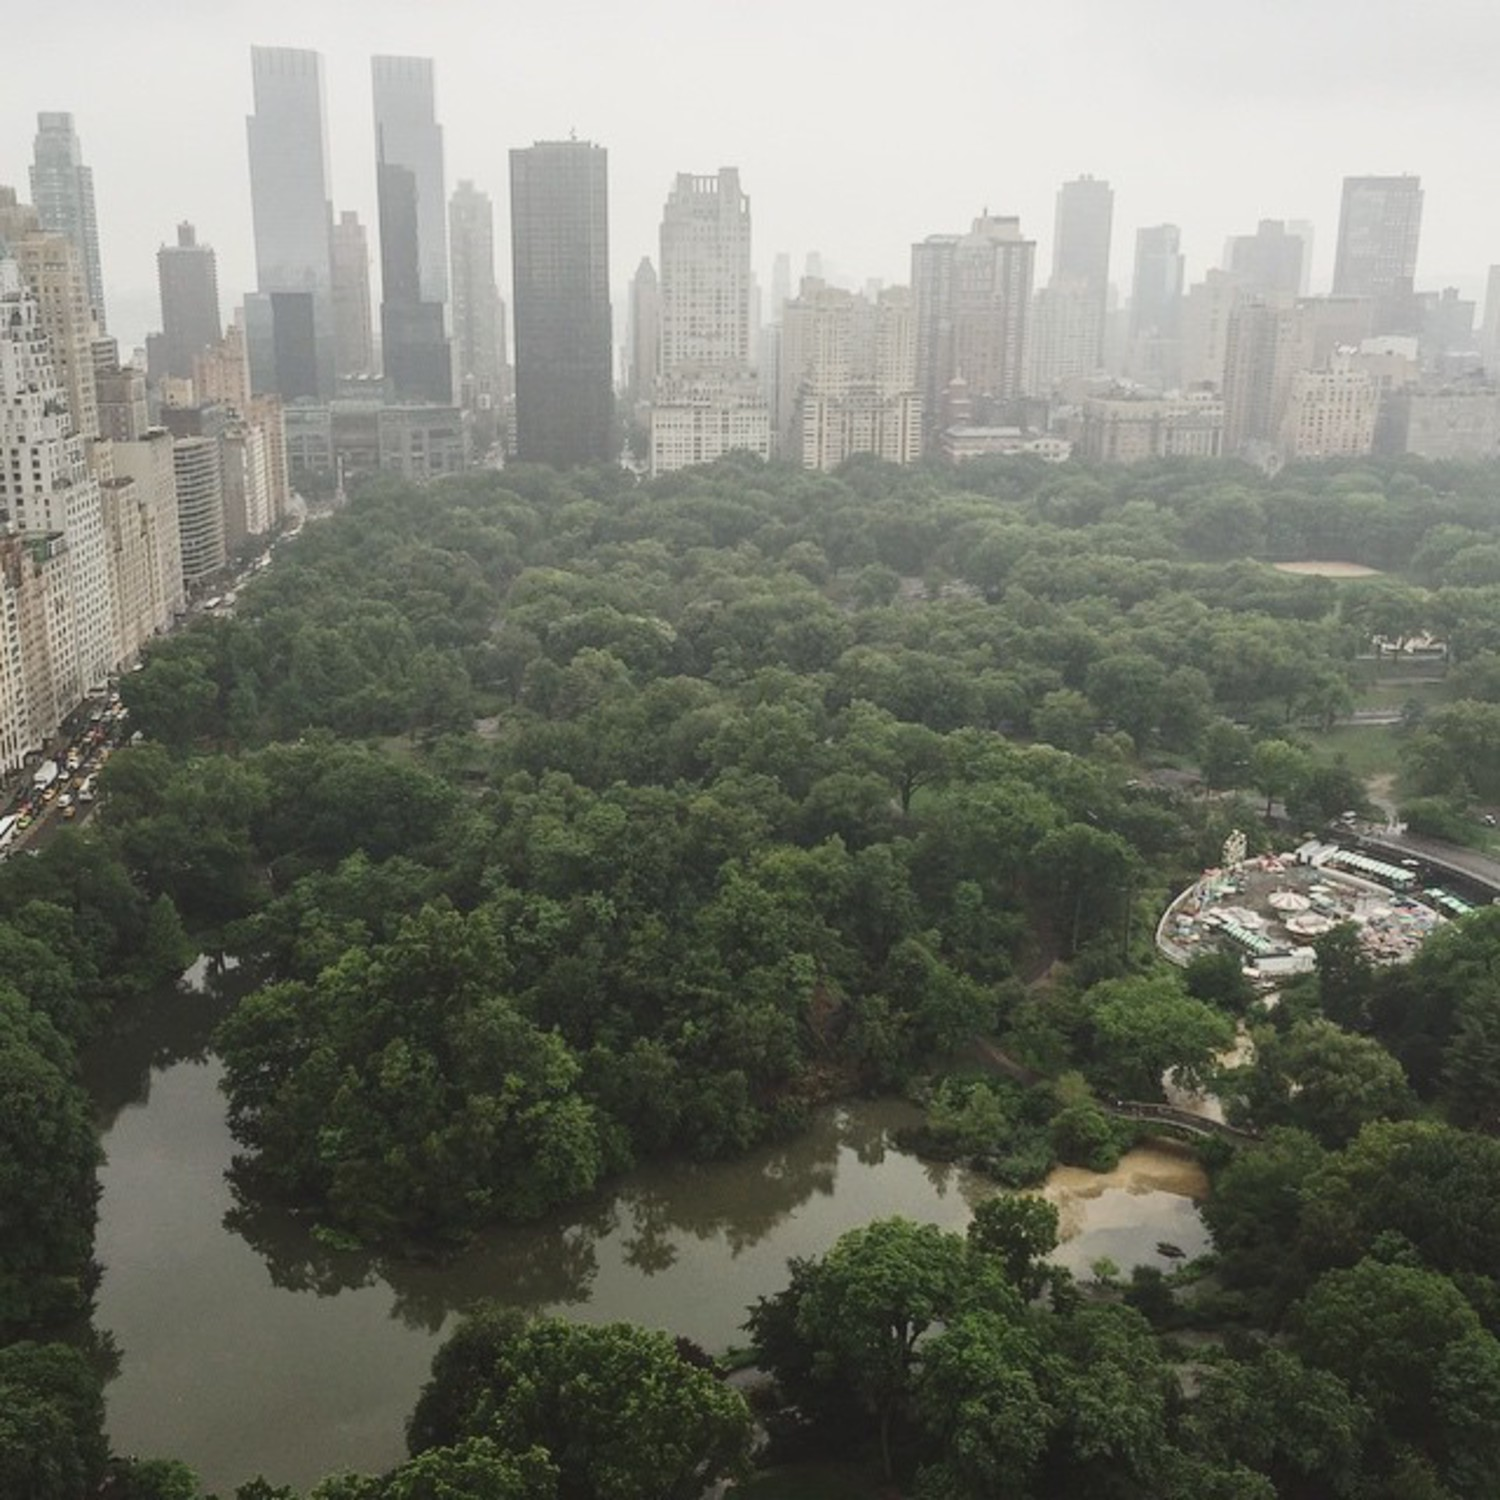 New York Jungle  Seen from @thepierreny